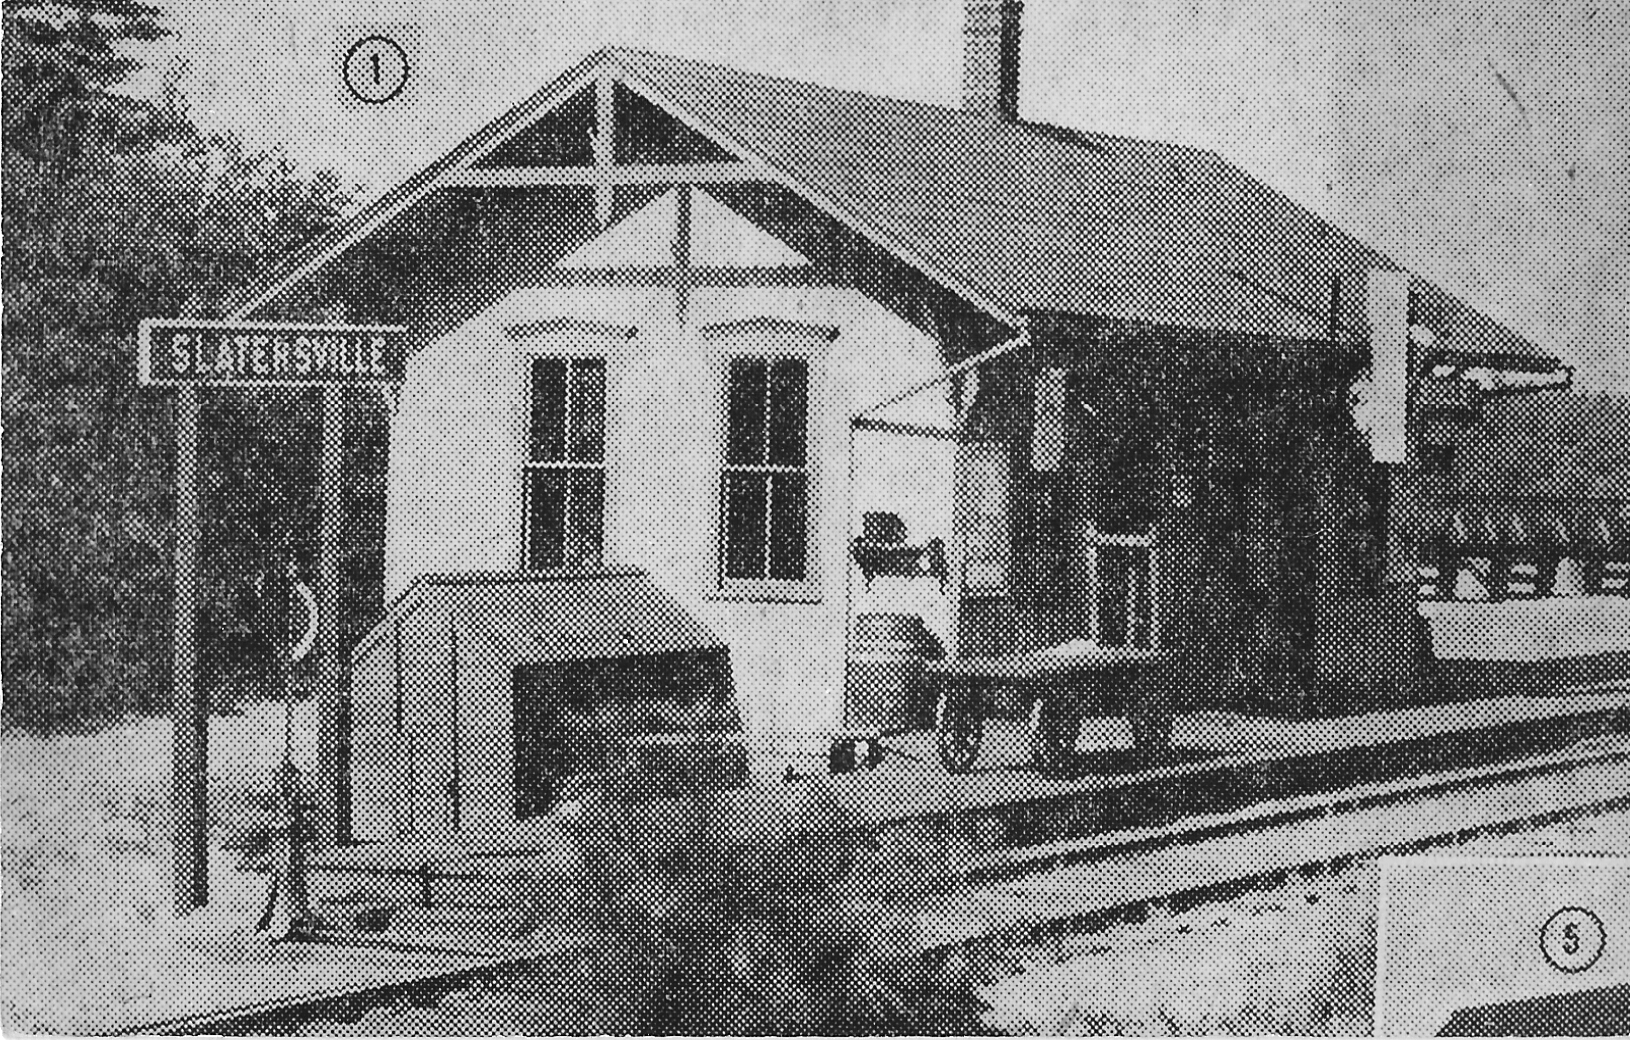 Slattersville railroad station